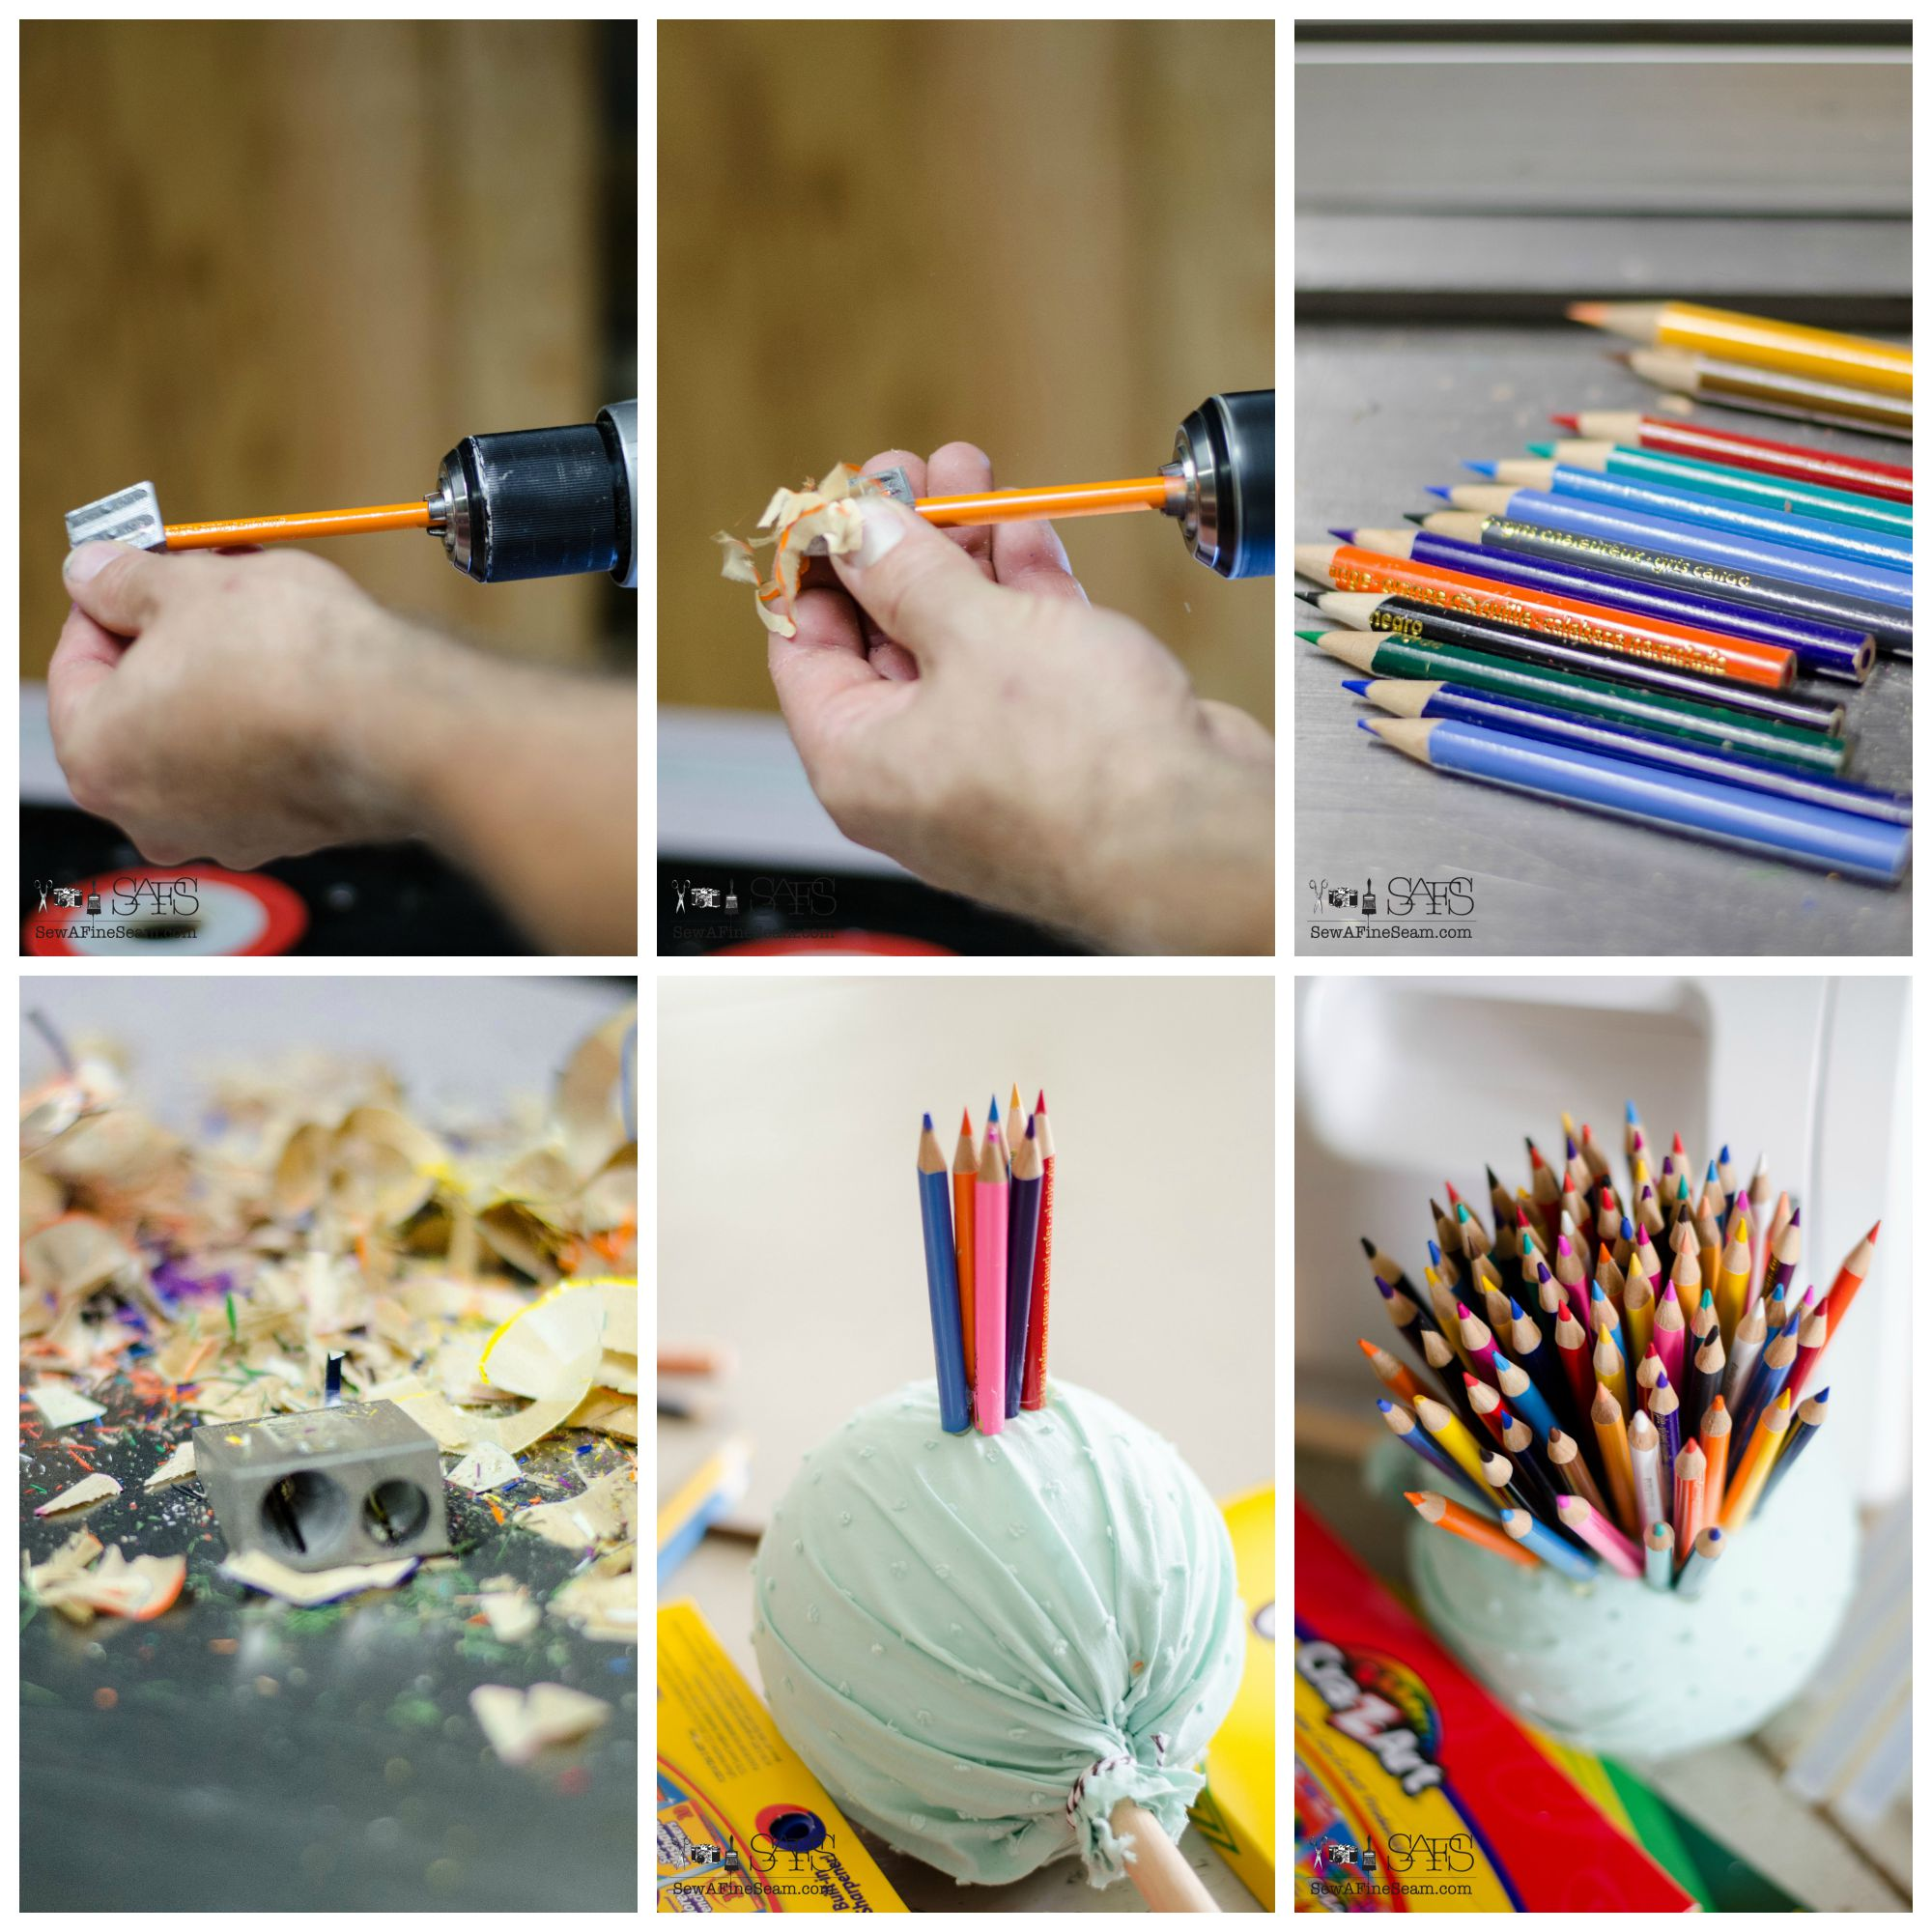 Colored pencil craft flower made of colored pencils and planted in a